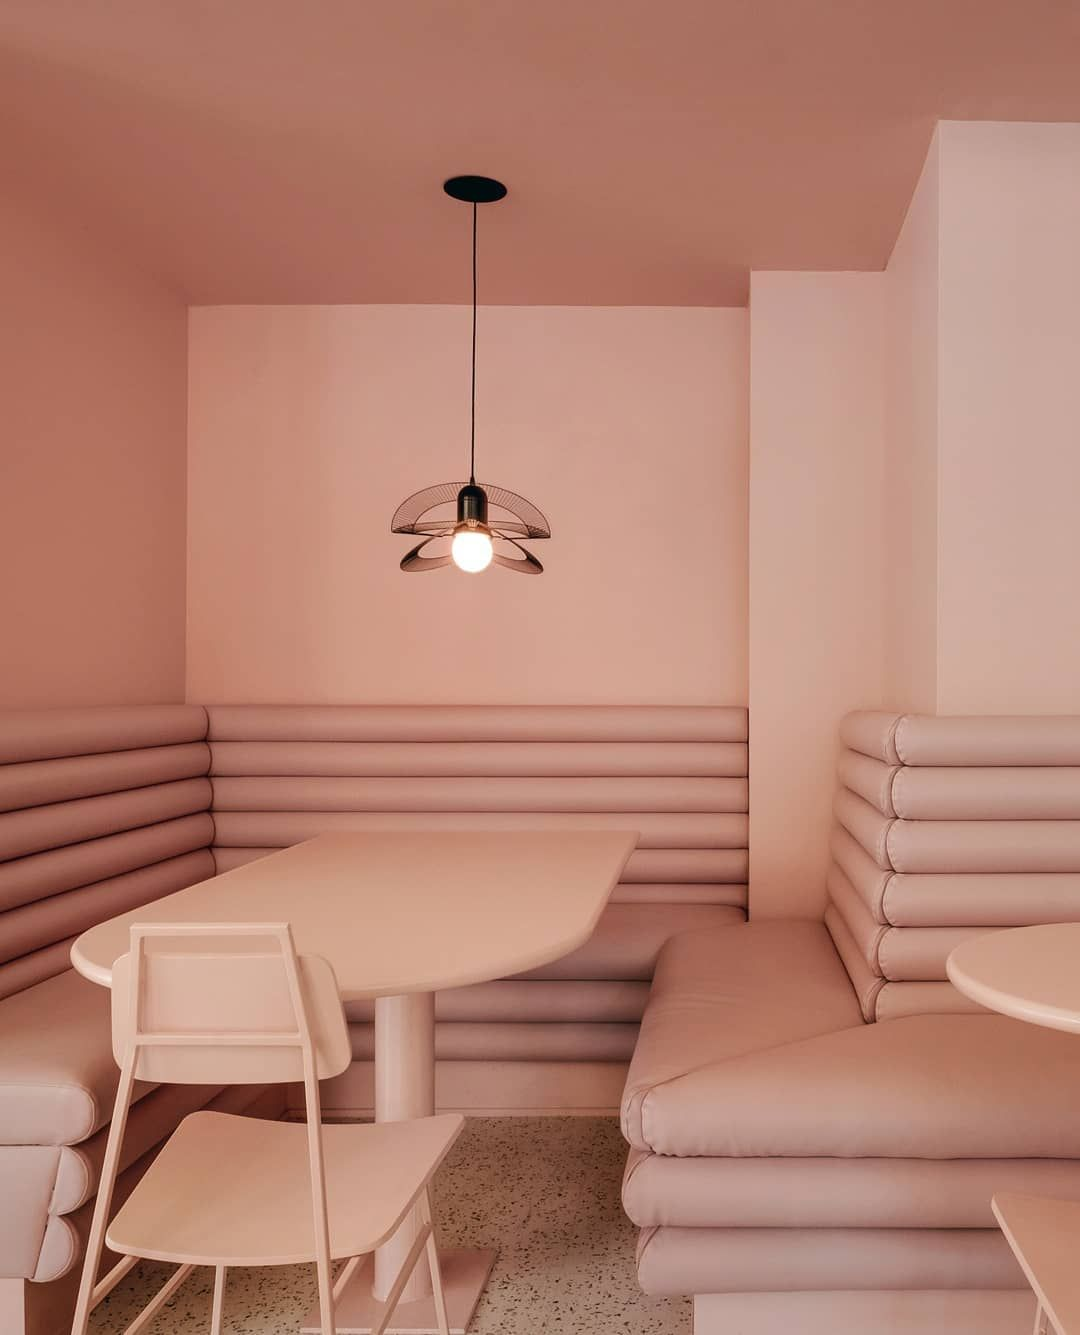 Bold Colourful Eye Catching This Canadian Cafe Designed By Appareilarchitecture Masters The Art Of Muted Monochrome What S Mor With Images Monochrome Interior Design